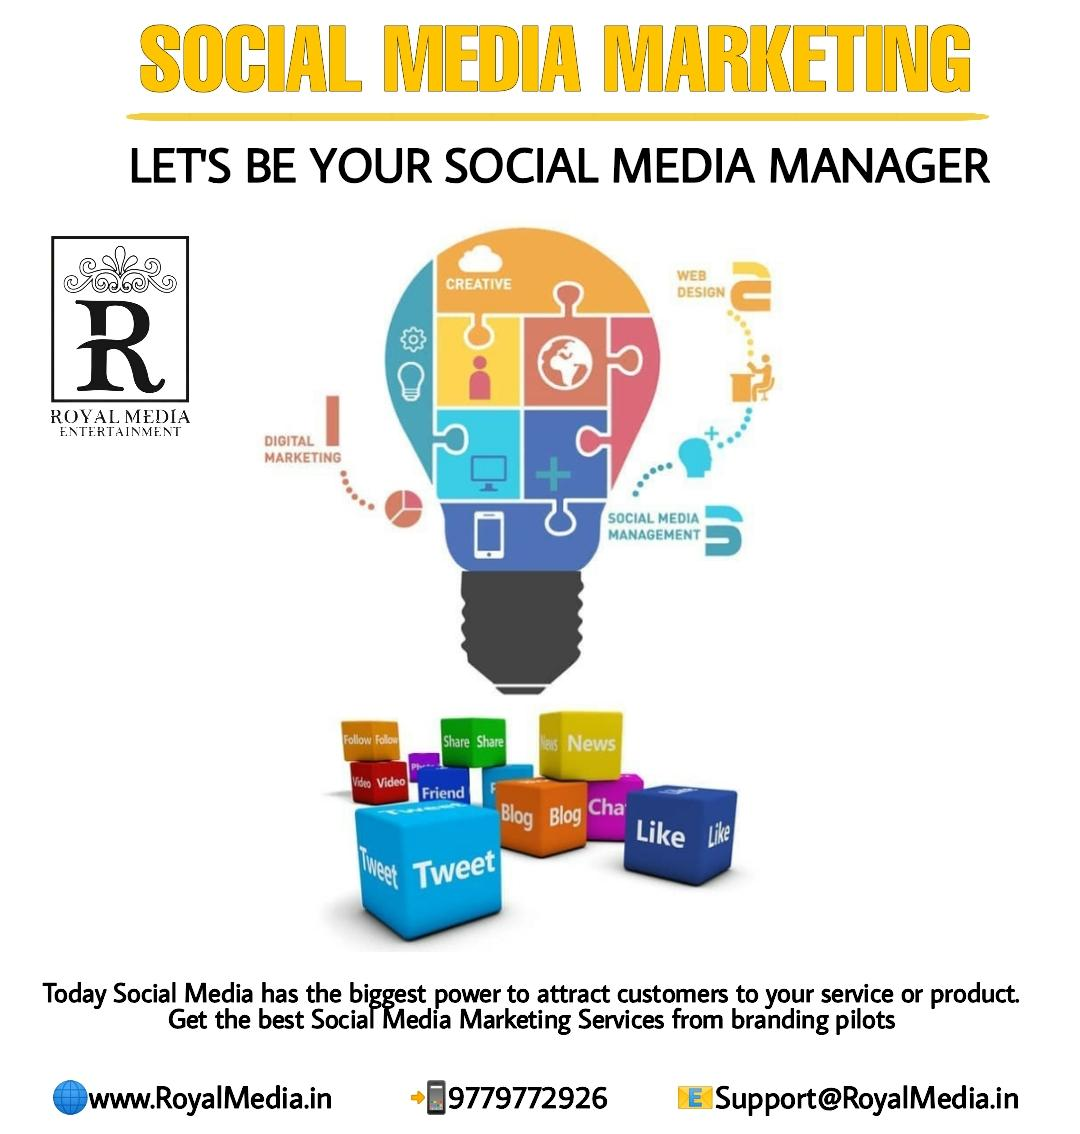 Get the best social media marketing services from branding pilots.